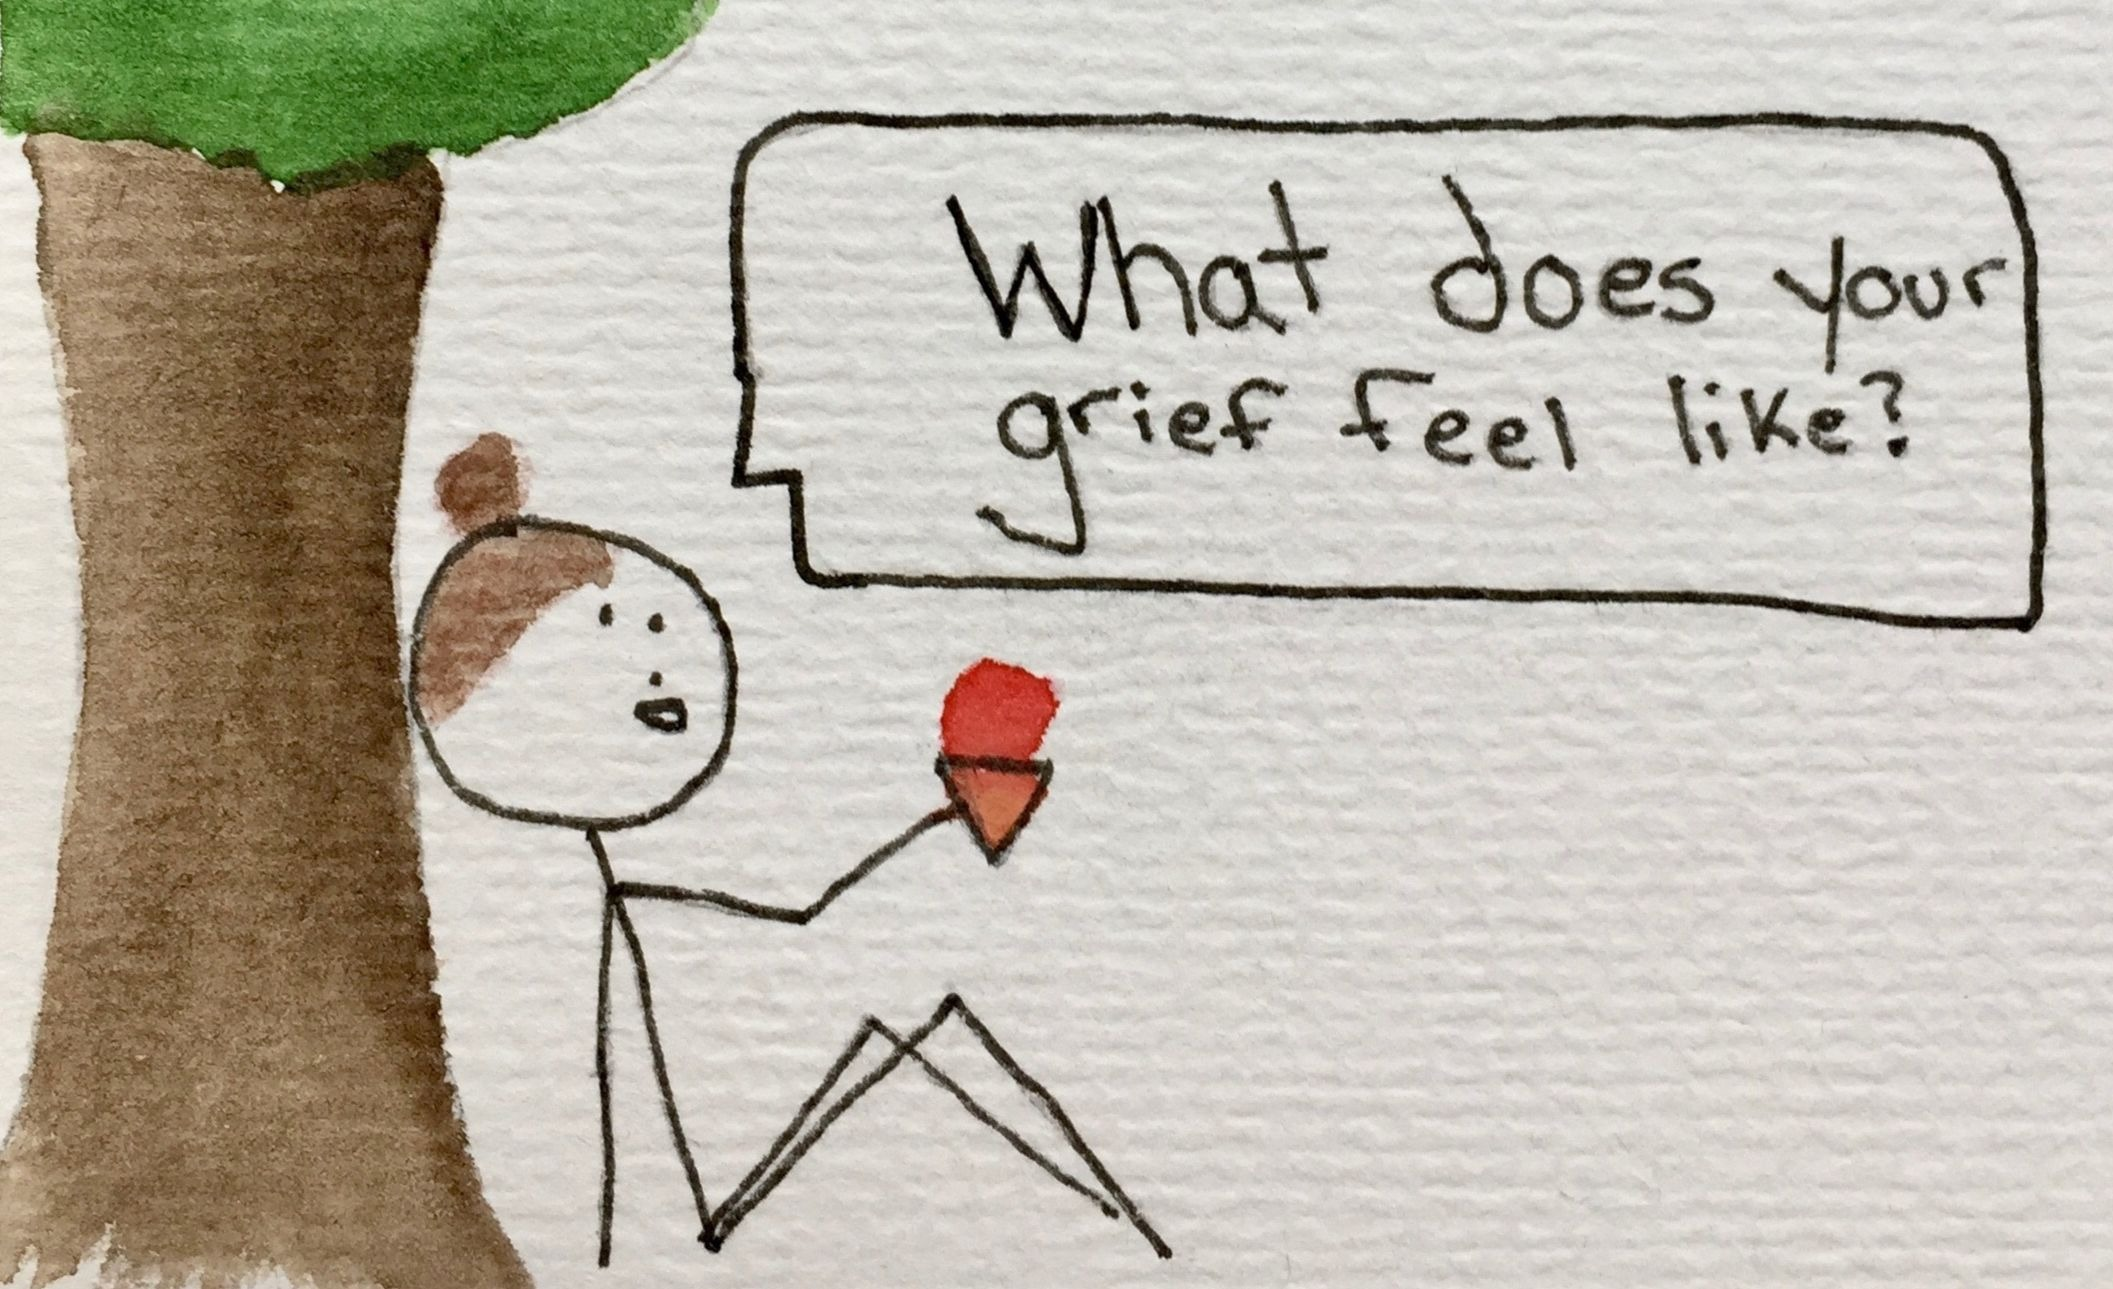 What My Grief Feels Like: An Illustrated Guide - Modern Loss